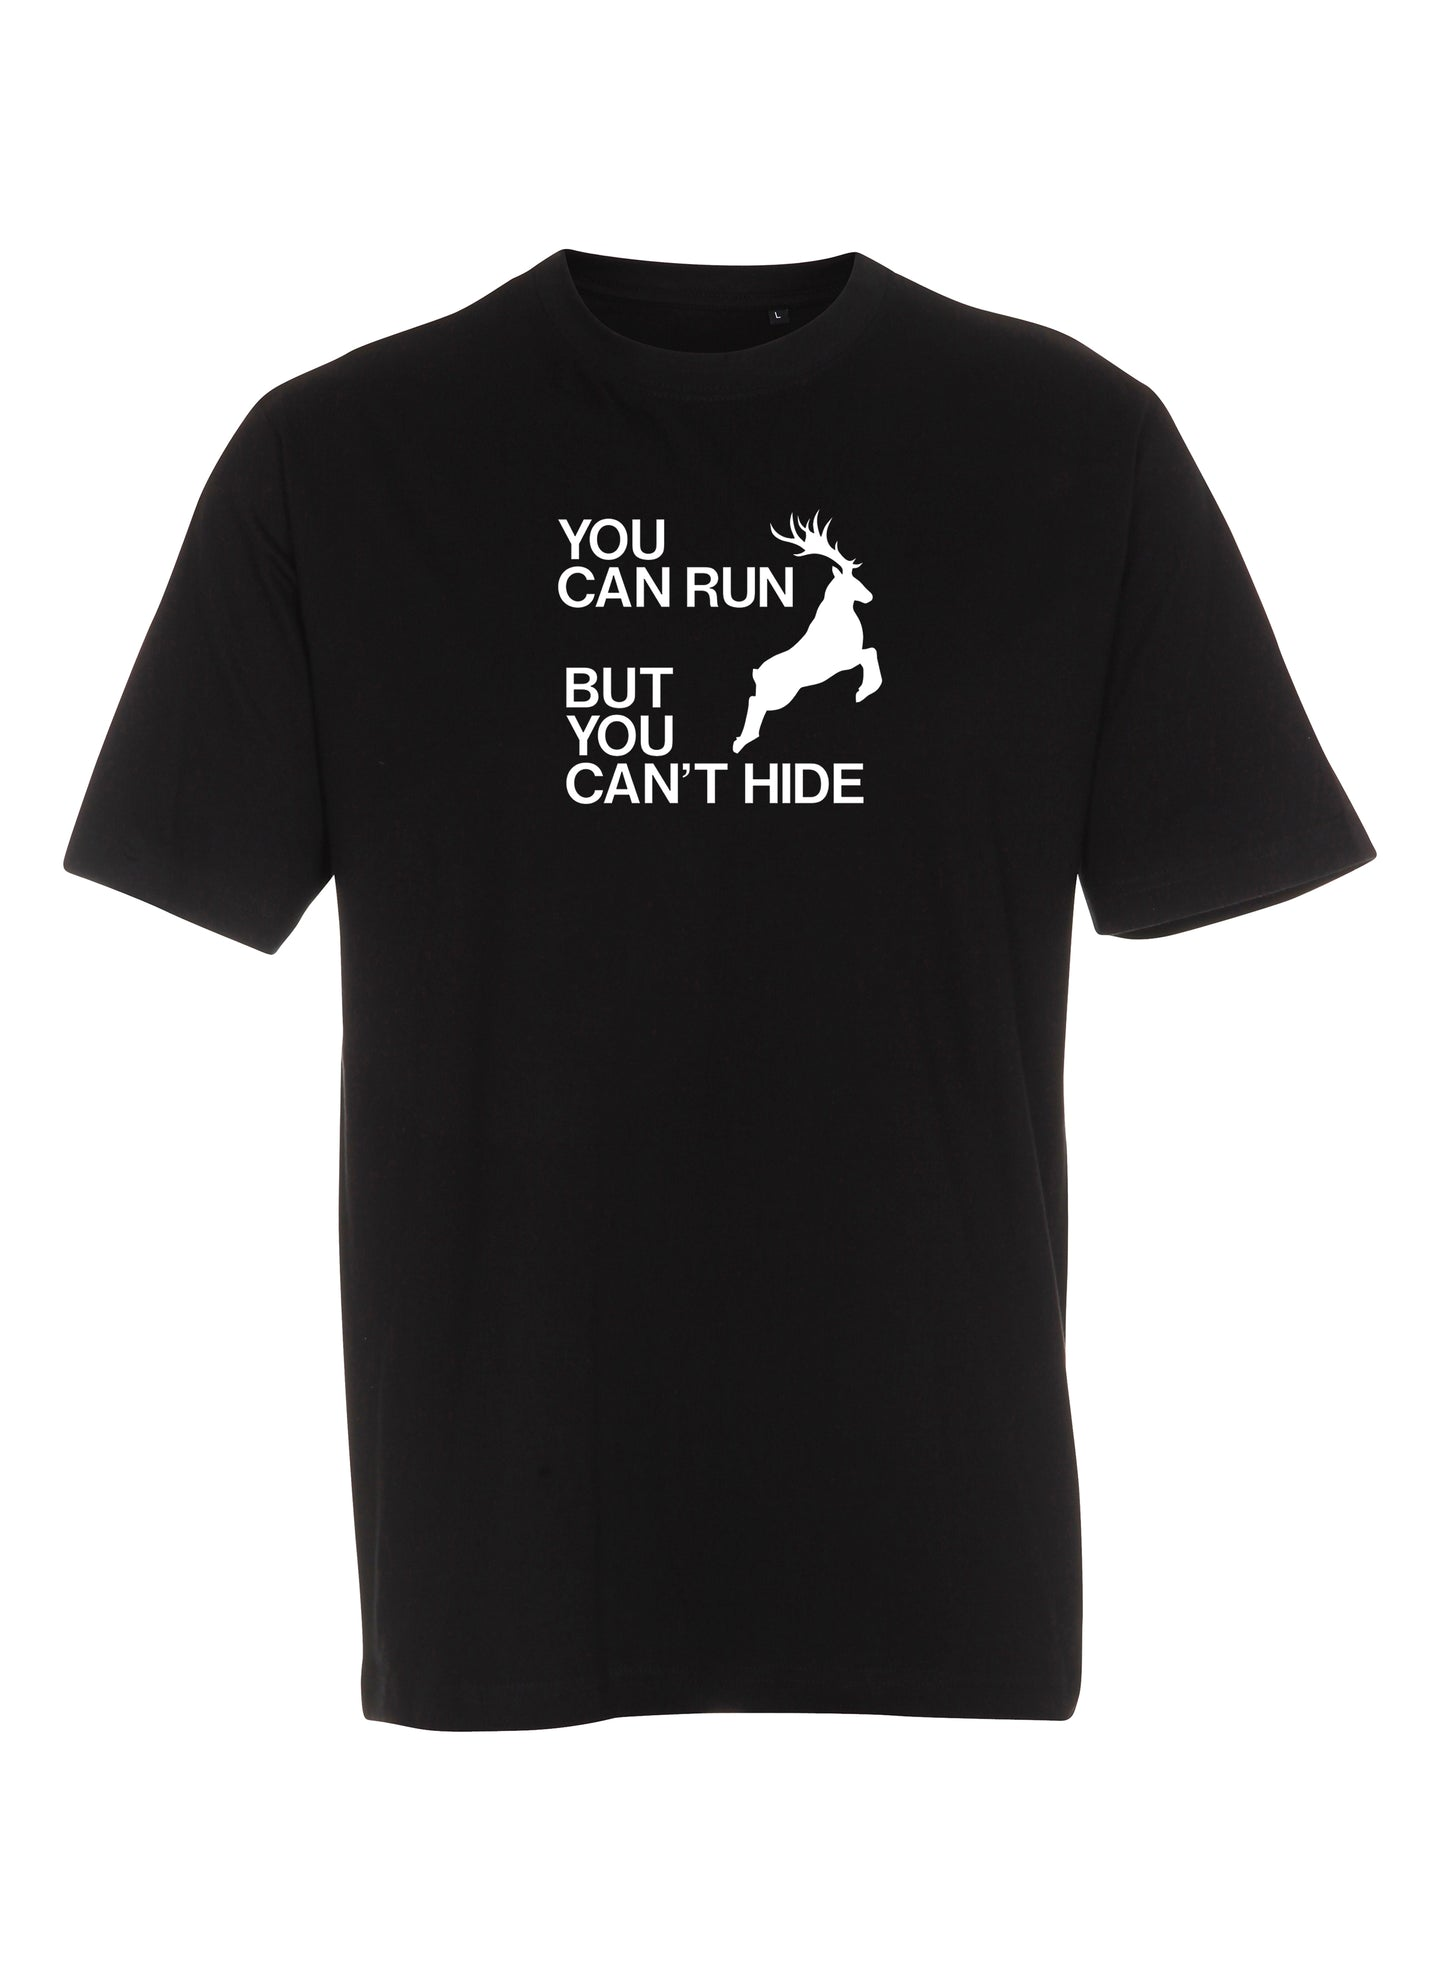 You can run but you can't hide (Børne t-shirt)